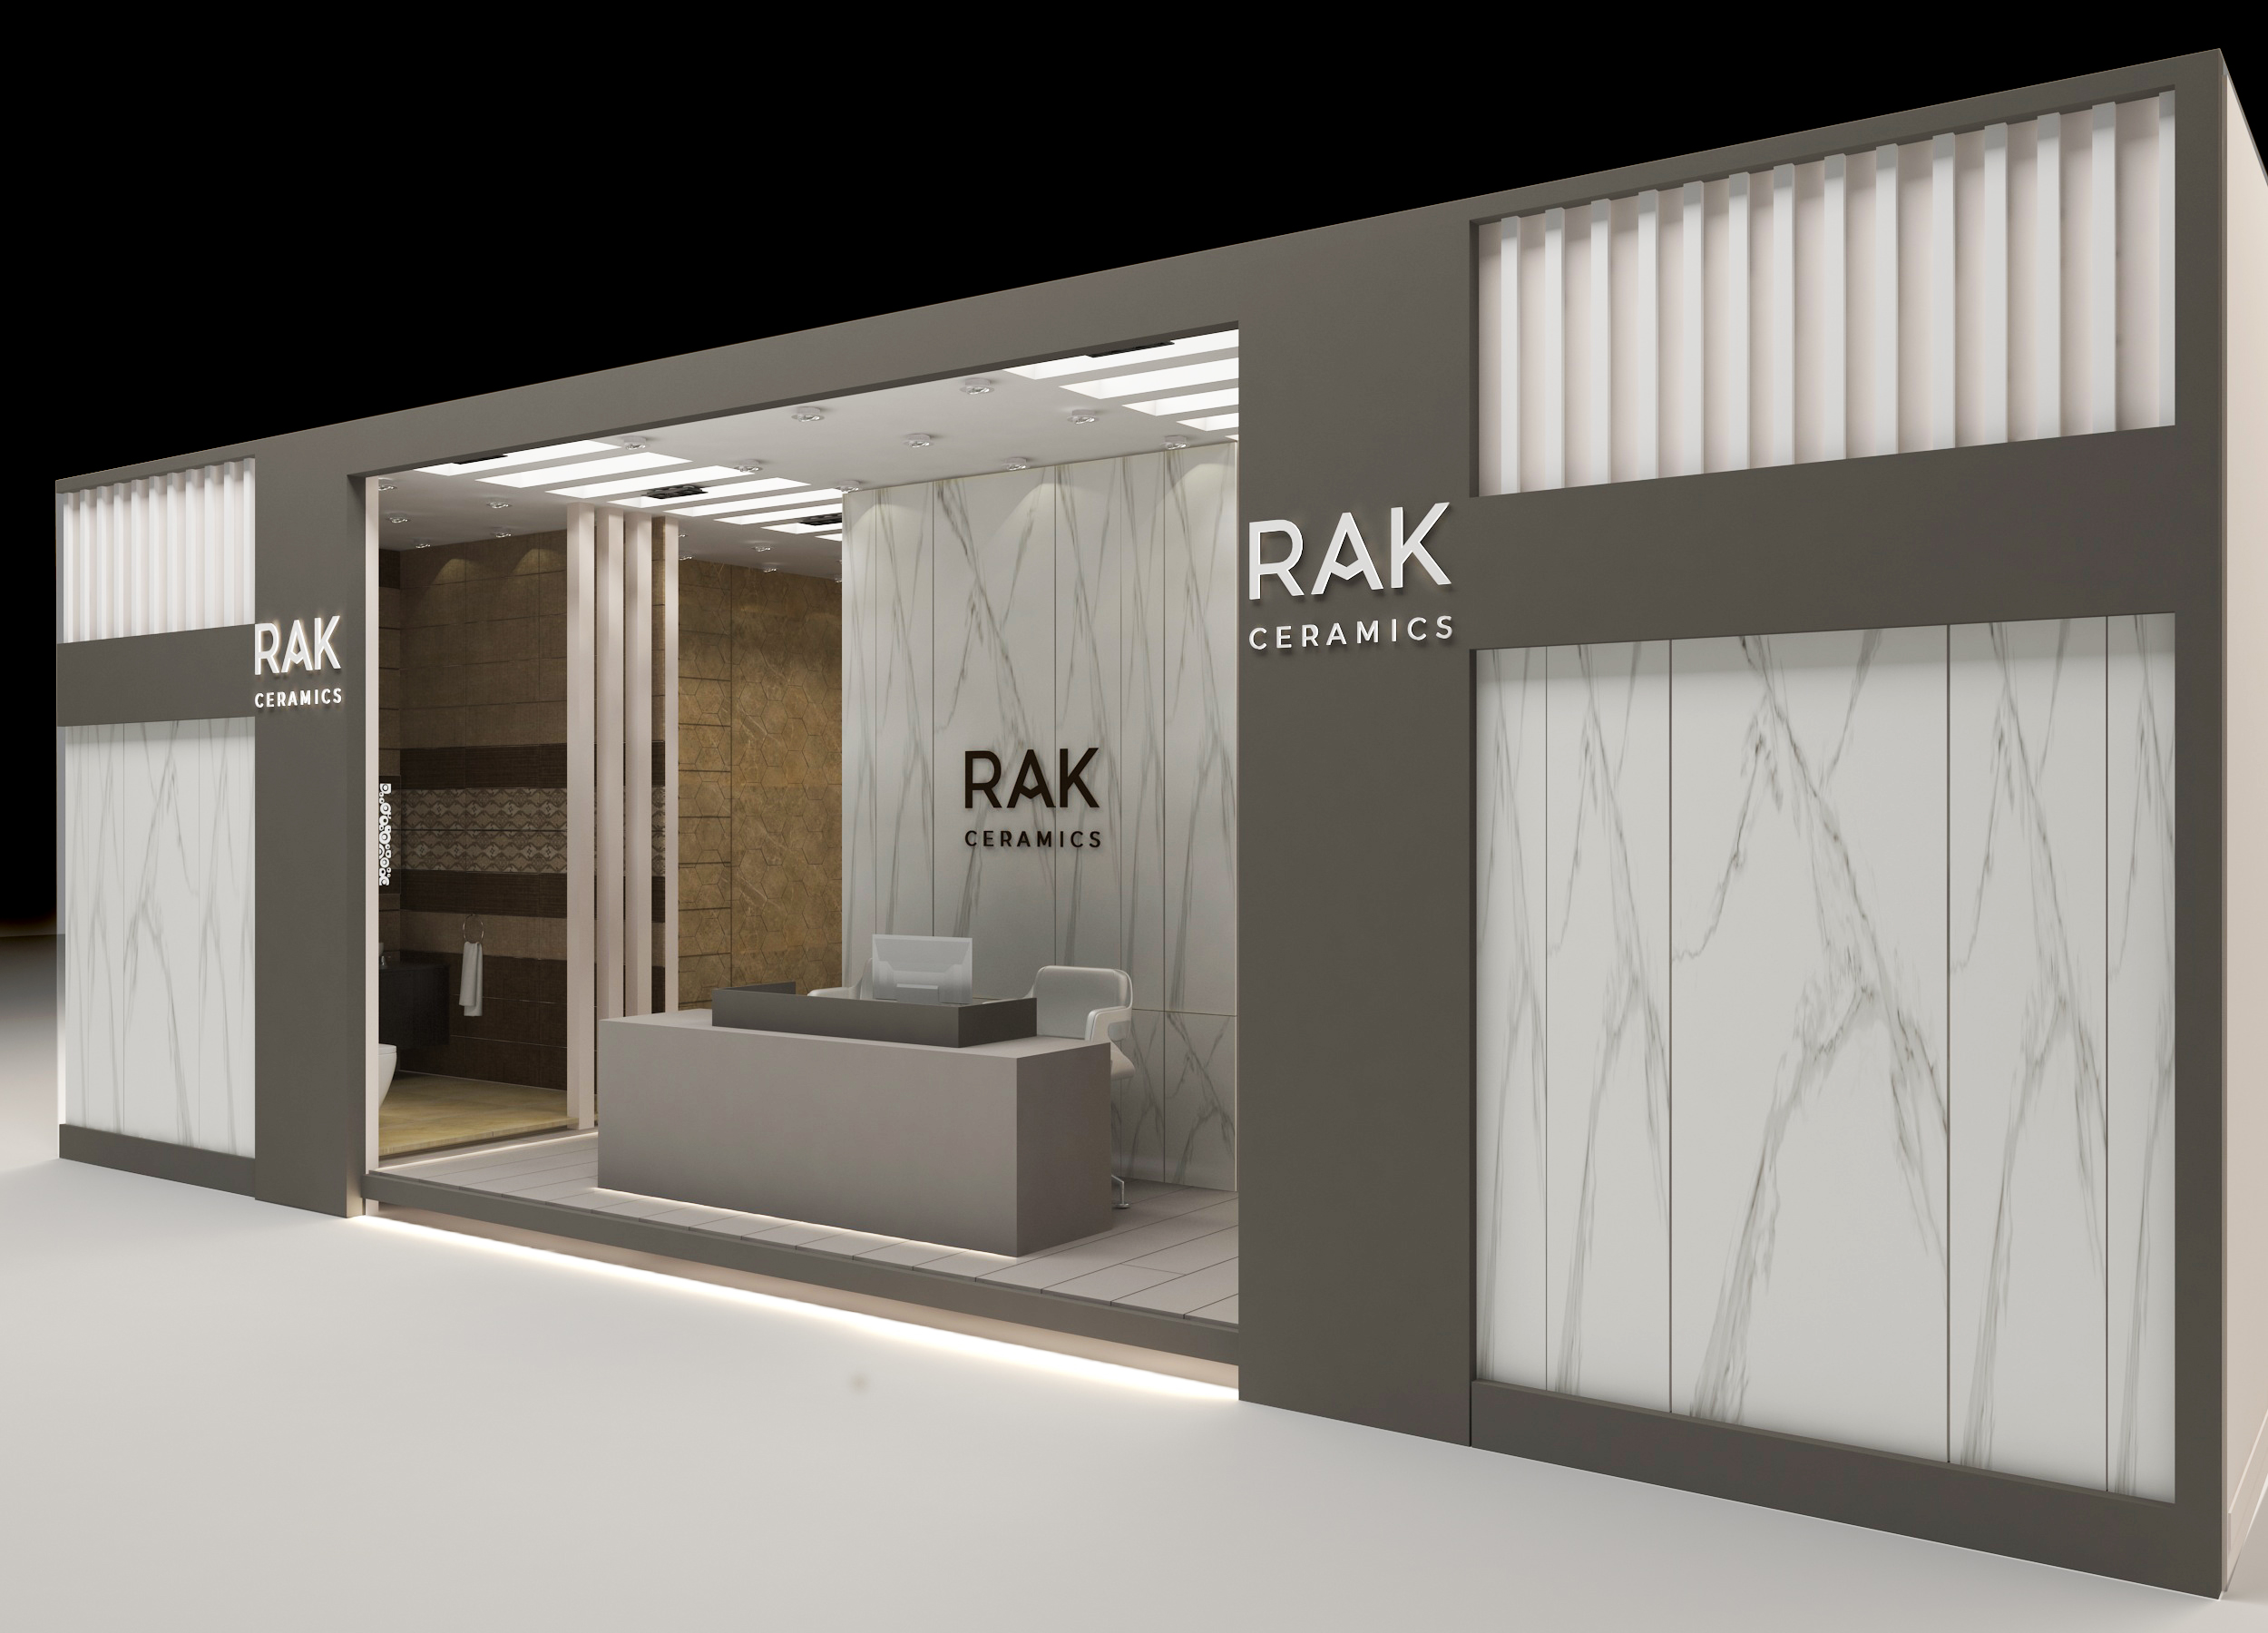 rak ceramics gmbh informationen aus der keramik und zubeh r branche. Black Bedroom Furniture Sets. Home Design Ideas